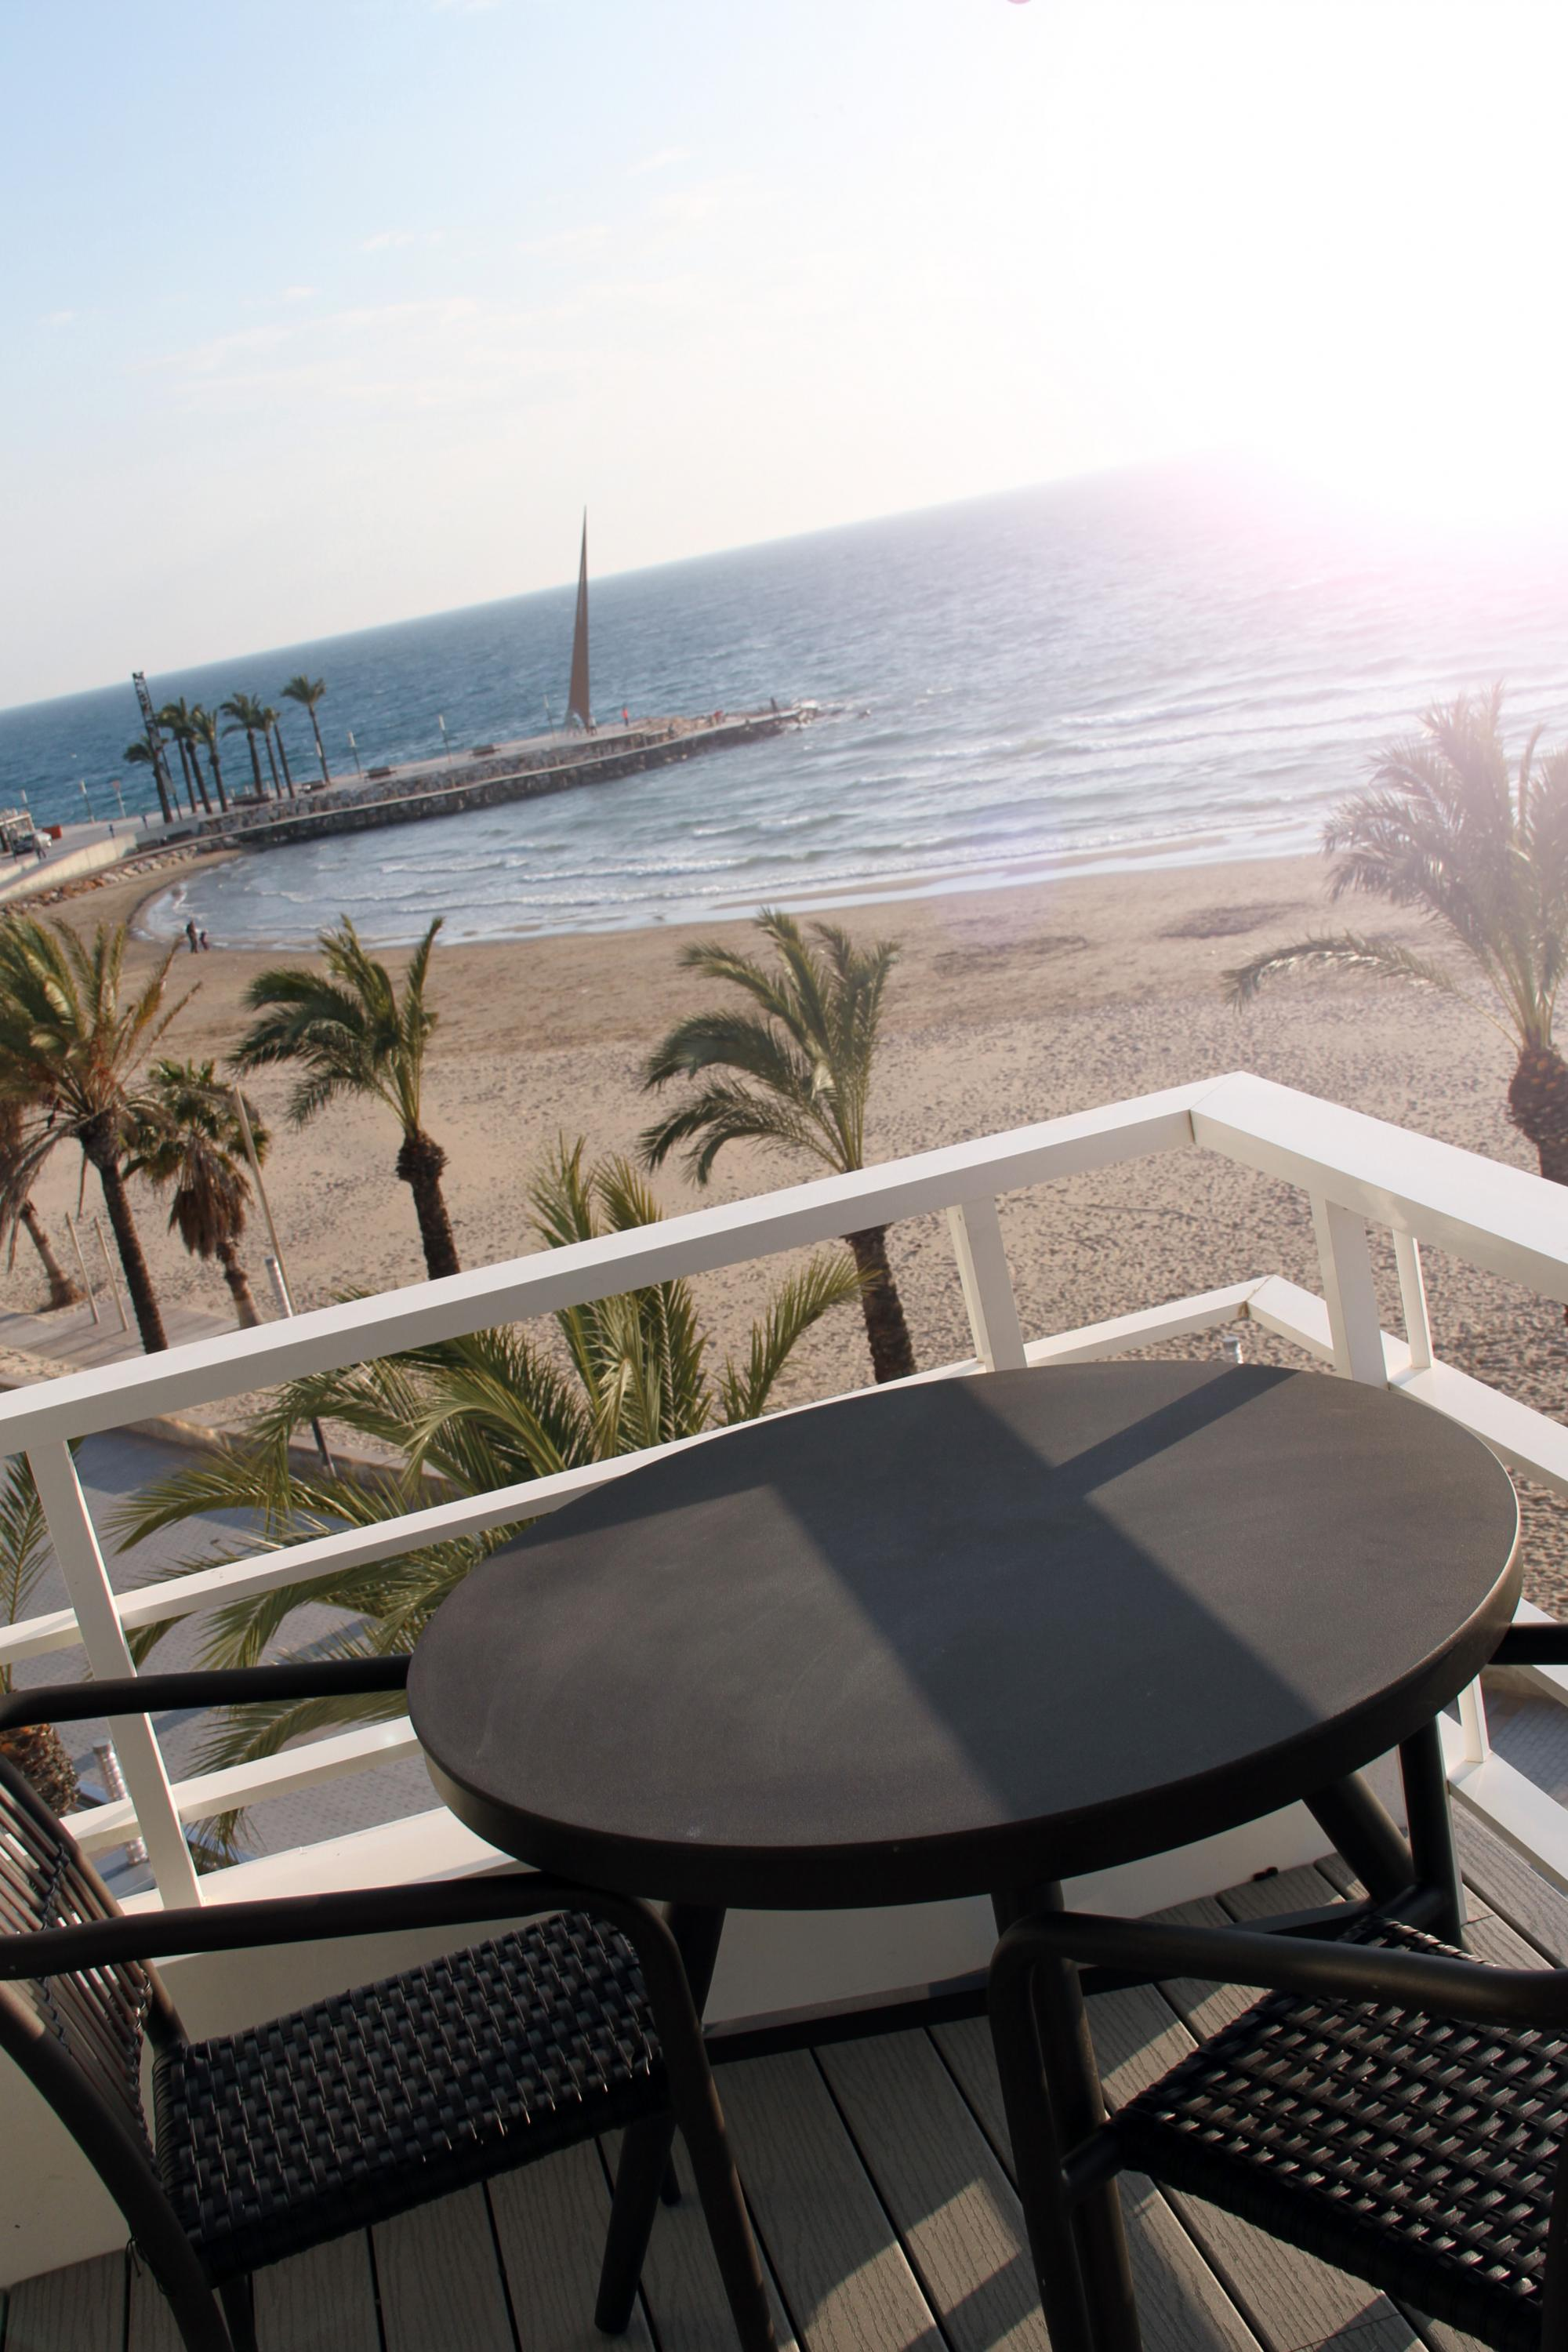 CB194 CB194 RUBENS LUXURY Apartamento playa SALOU